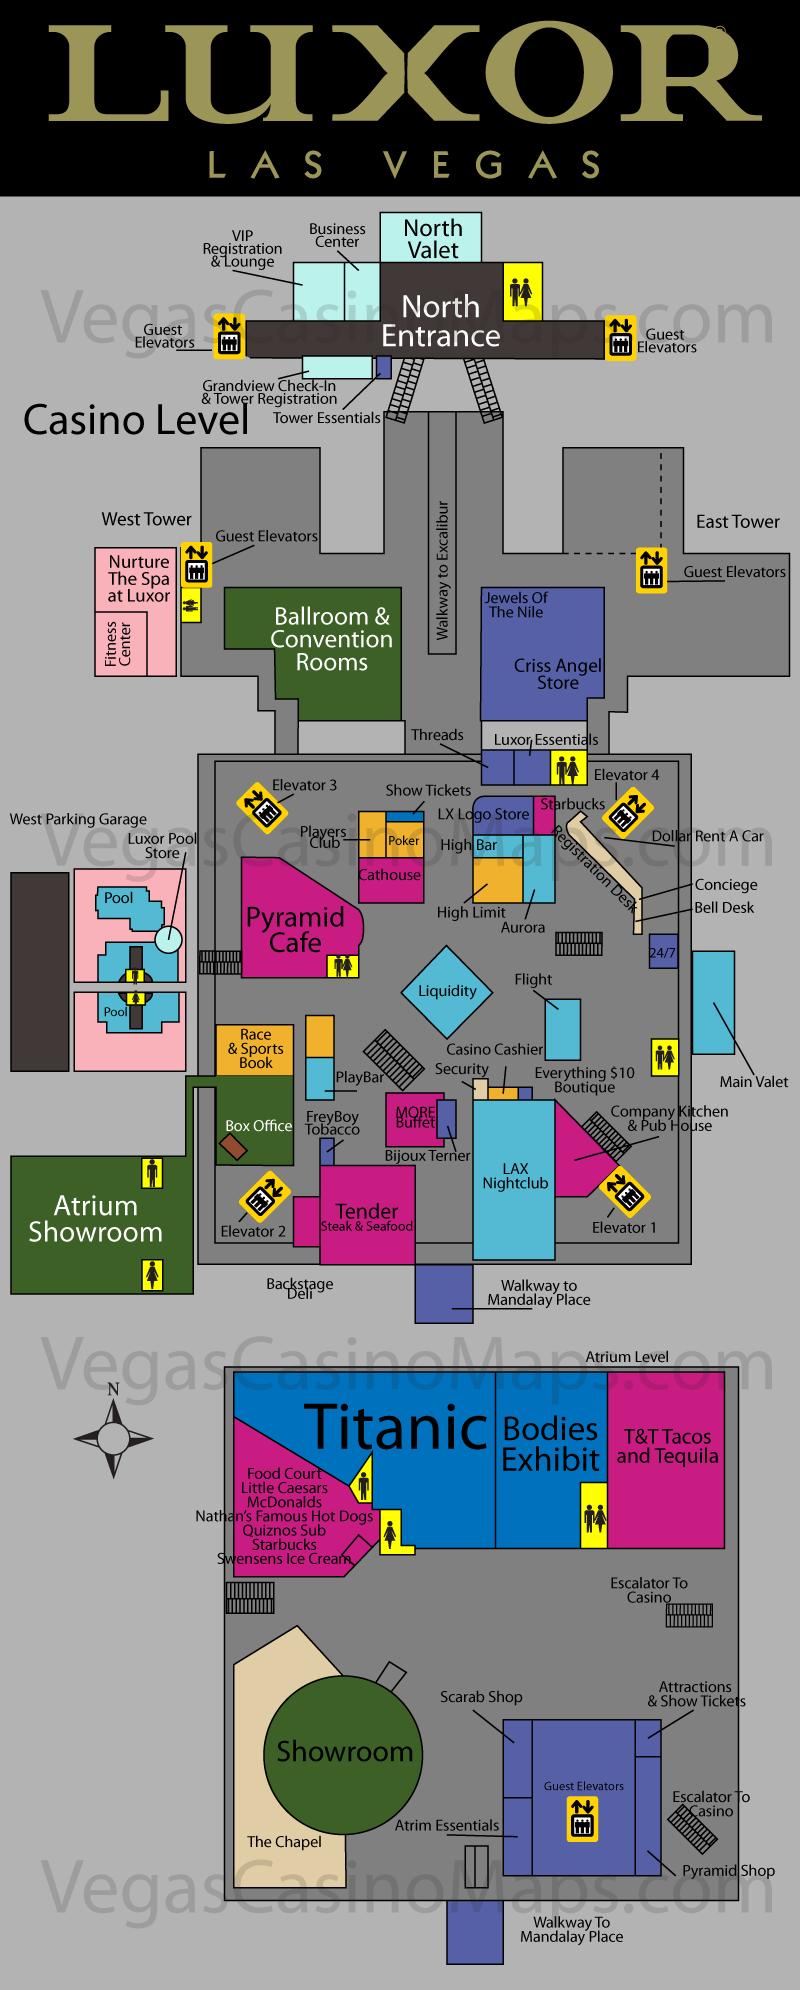 LuxorHotelLasVegasMap Click a link below to